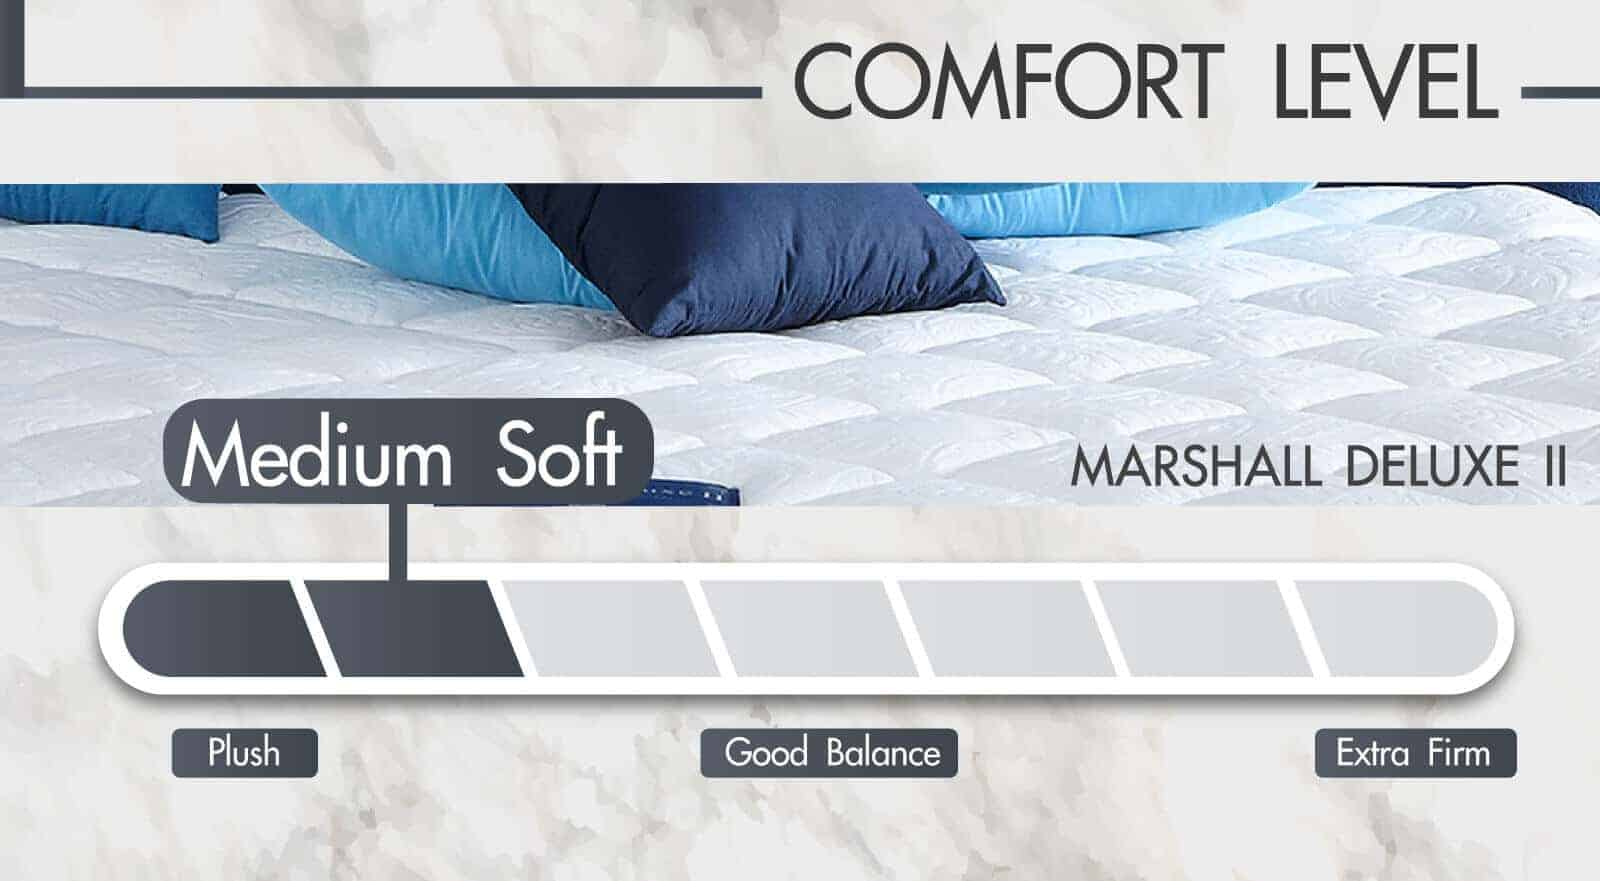 Lotus Foam Spring Mattress Marshall Deluxe II – Medium Soft Mattress – Thickness 12 inches – Warranty 10 years 14